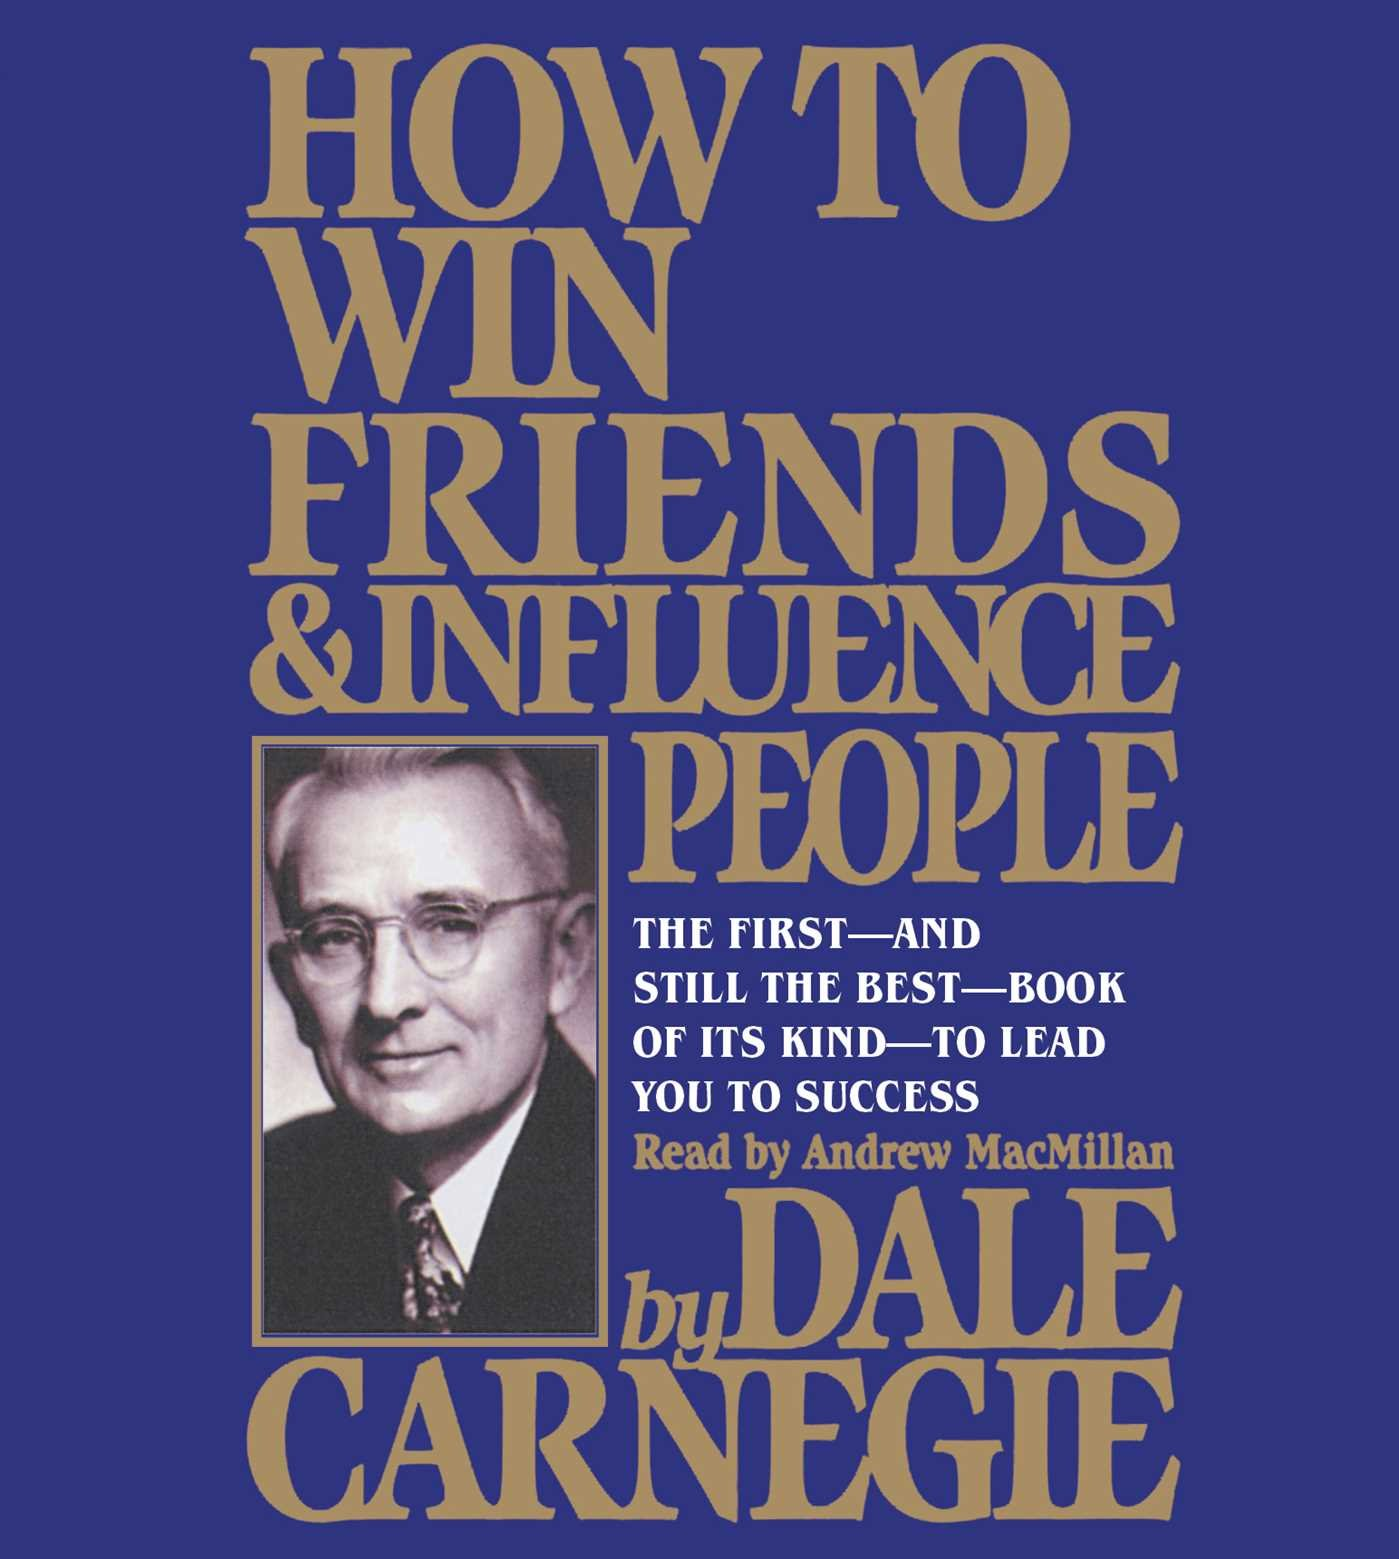 How to Win Friends & Influence People: Amazon.co.uk: Dale Carnegie, Andrew  MacMillan: 9781508241881: Books